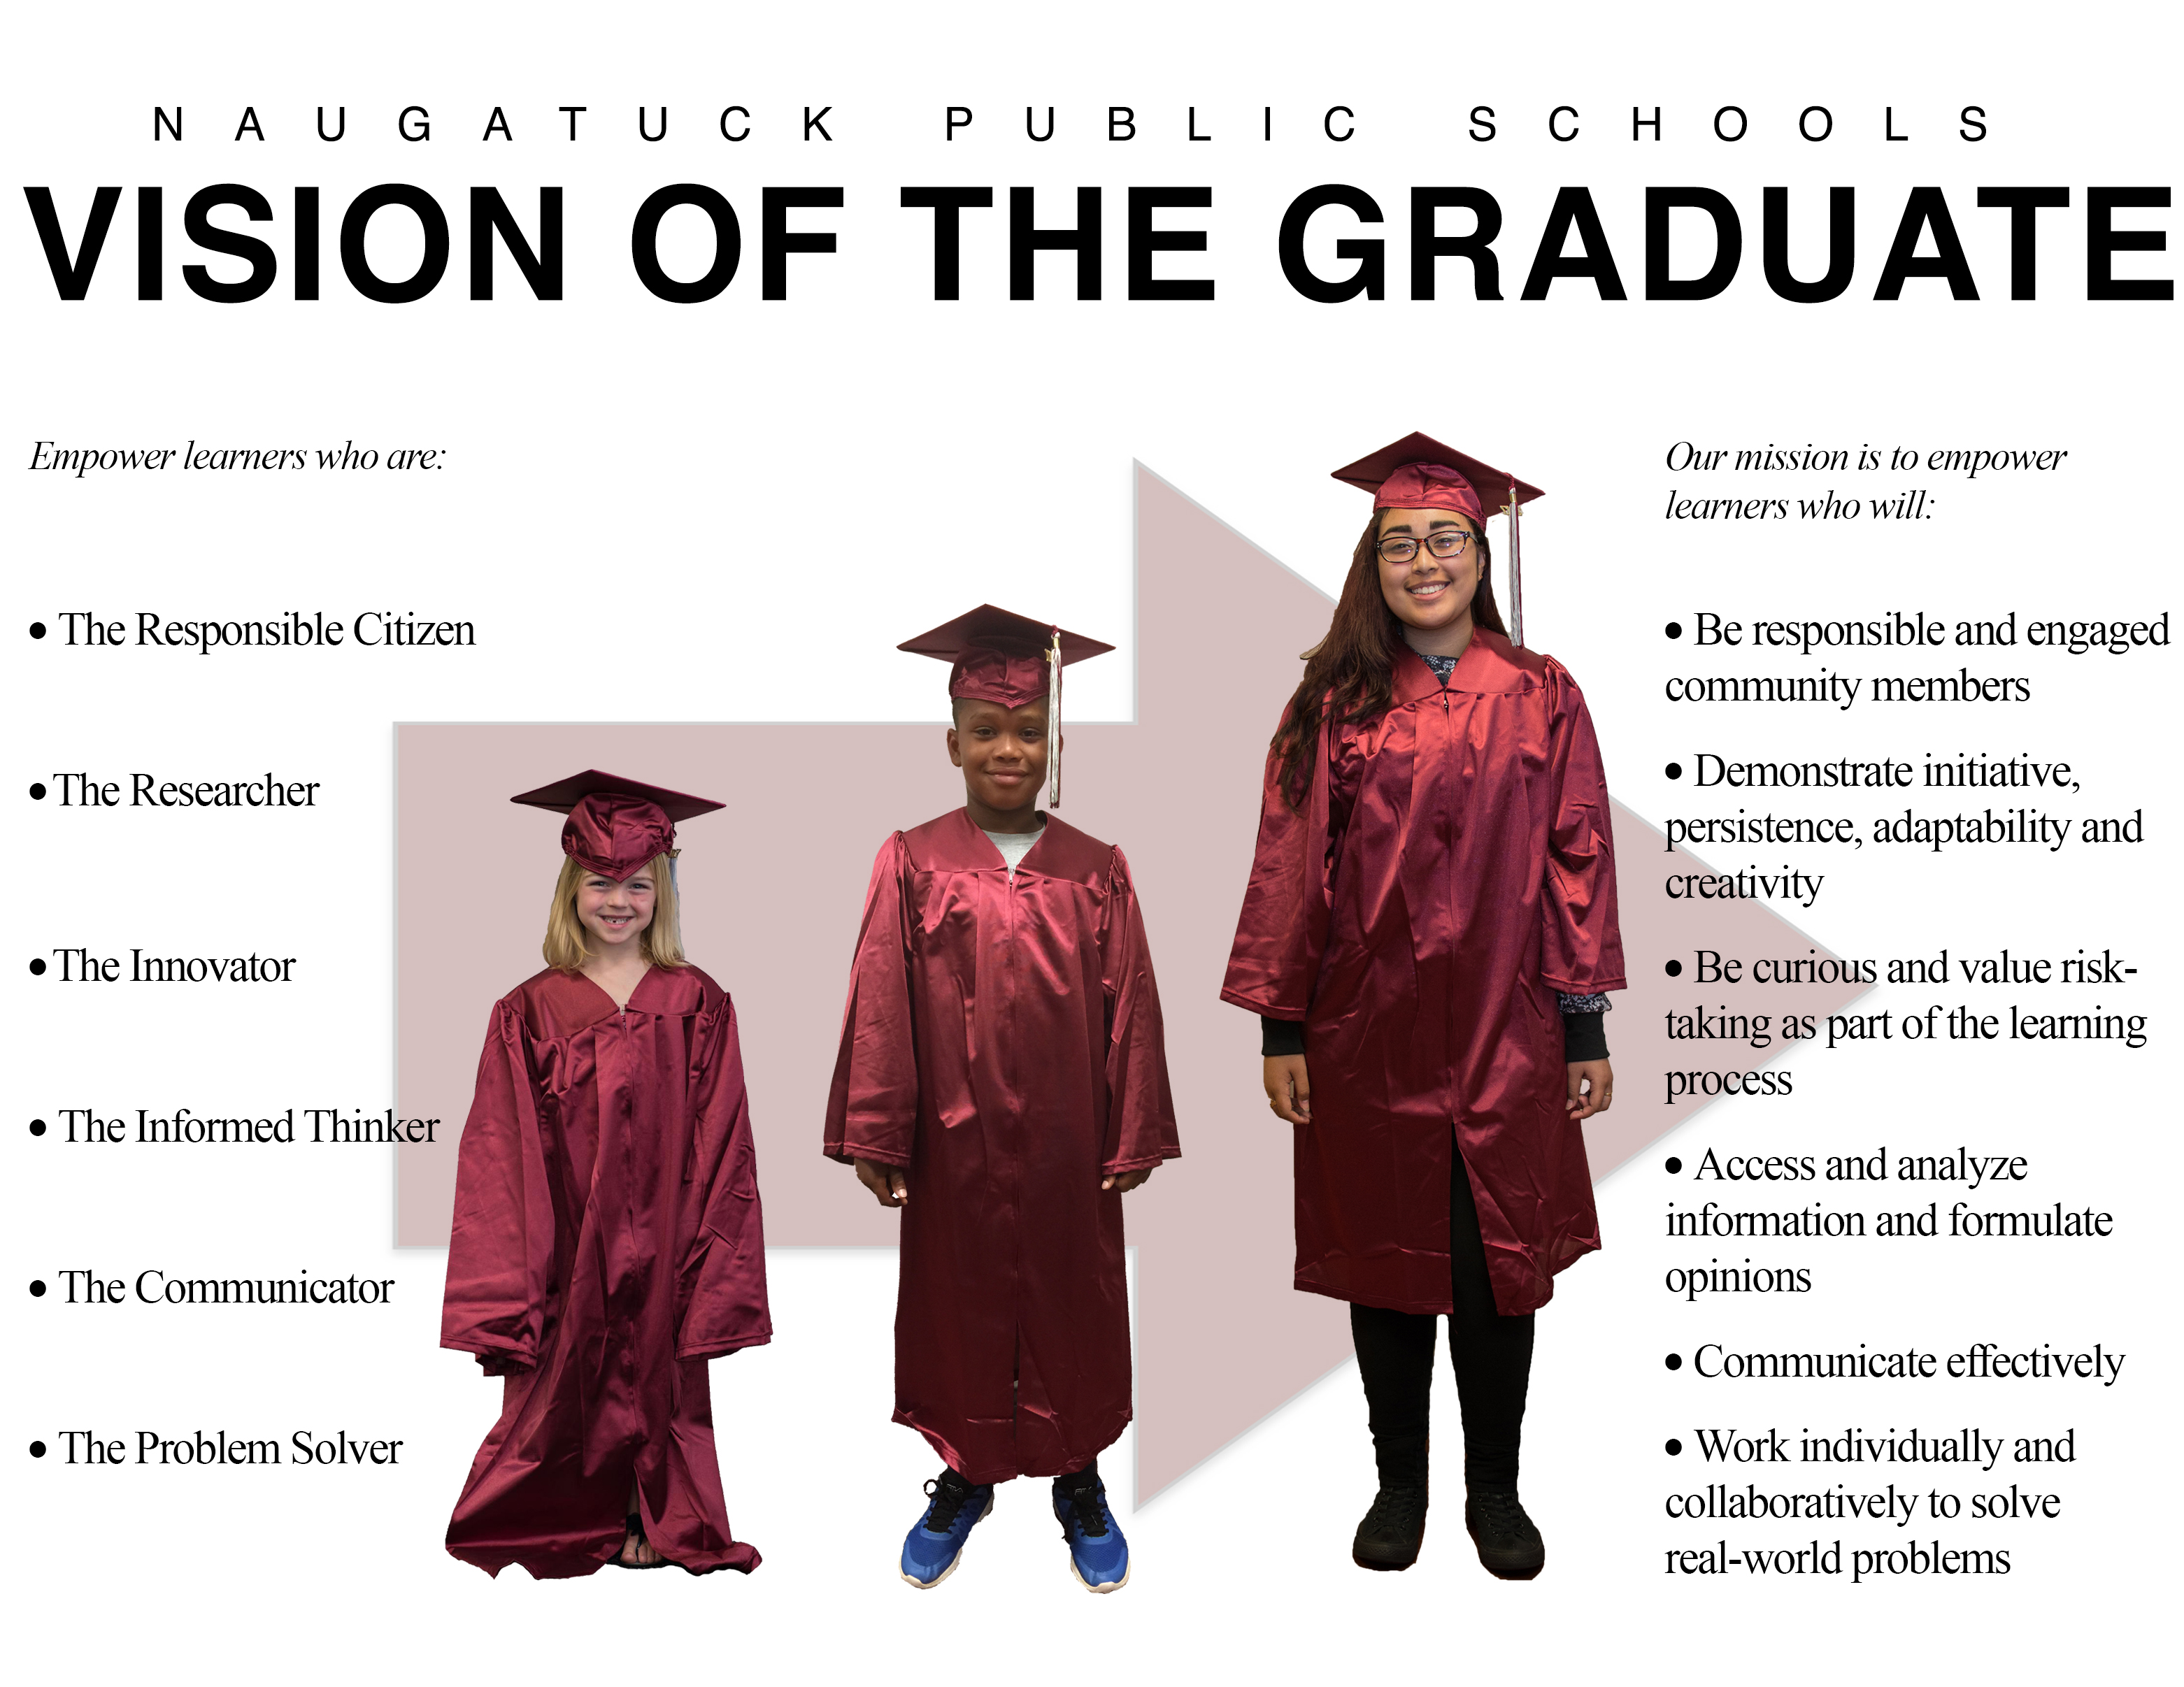 Vision of the Graduate